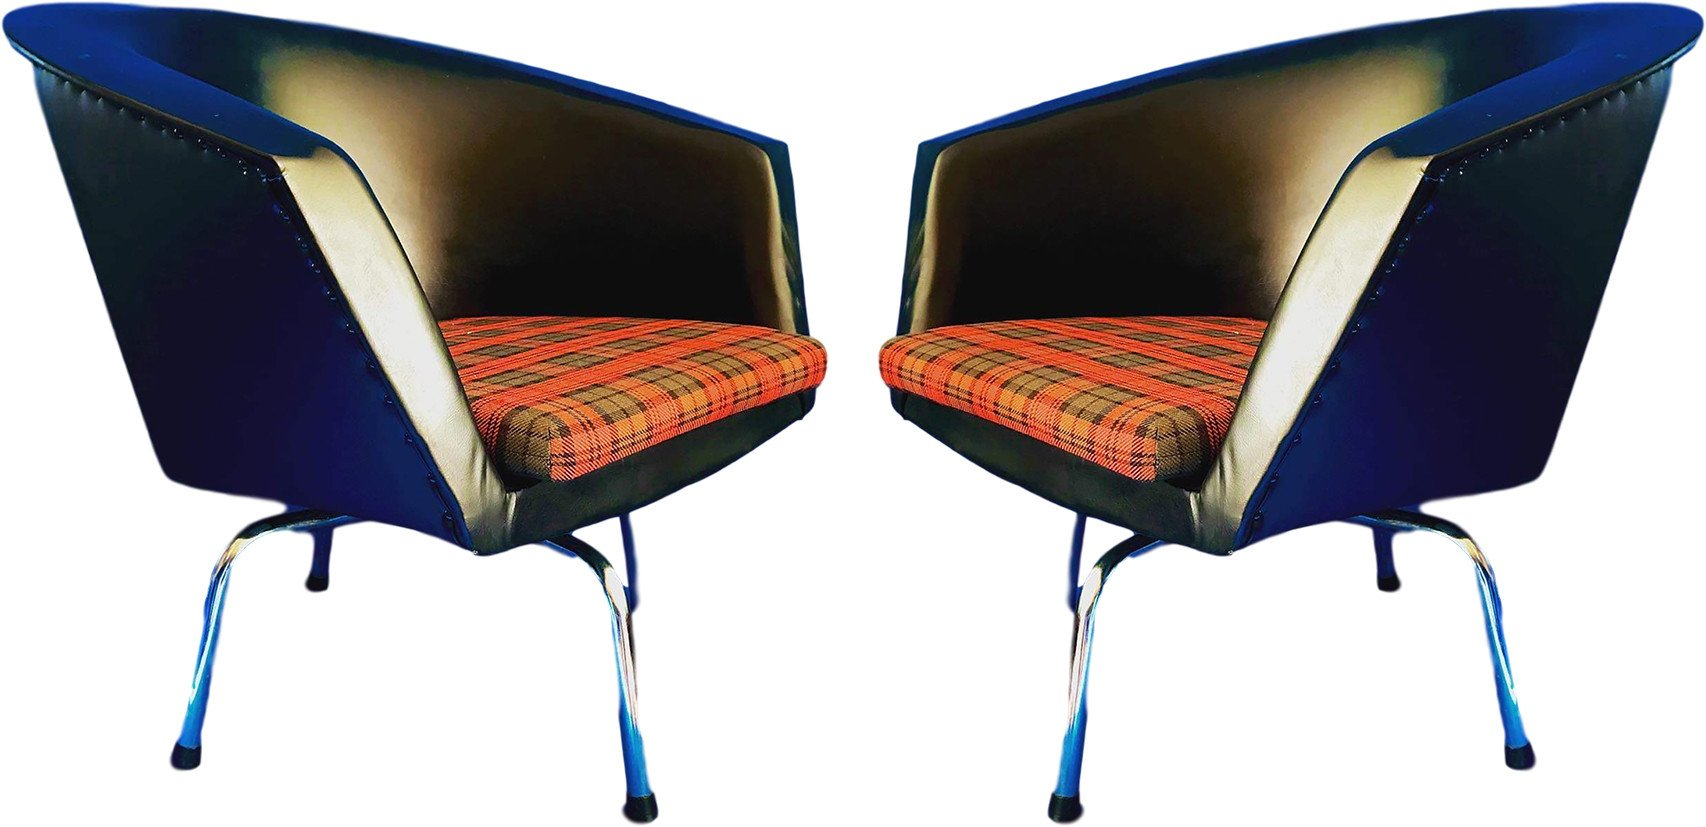 Pair of Armchairs, United States of America, 1980s